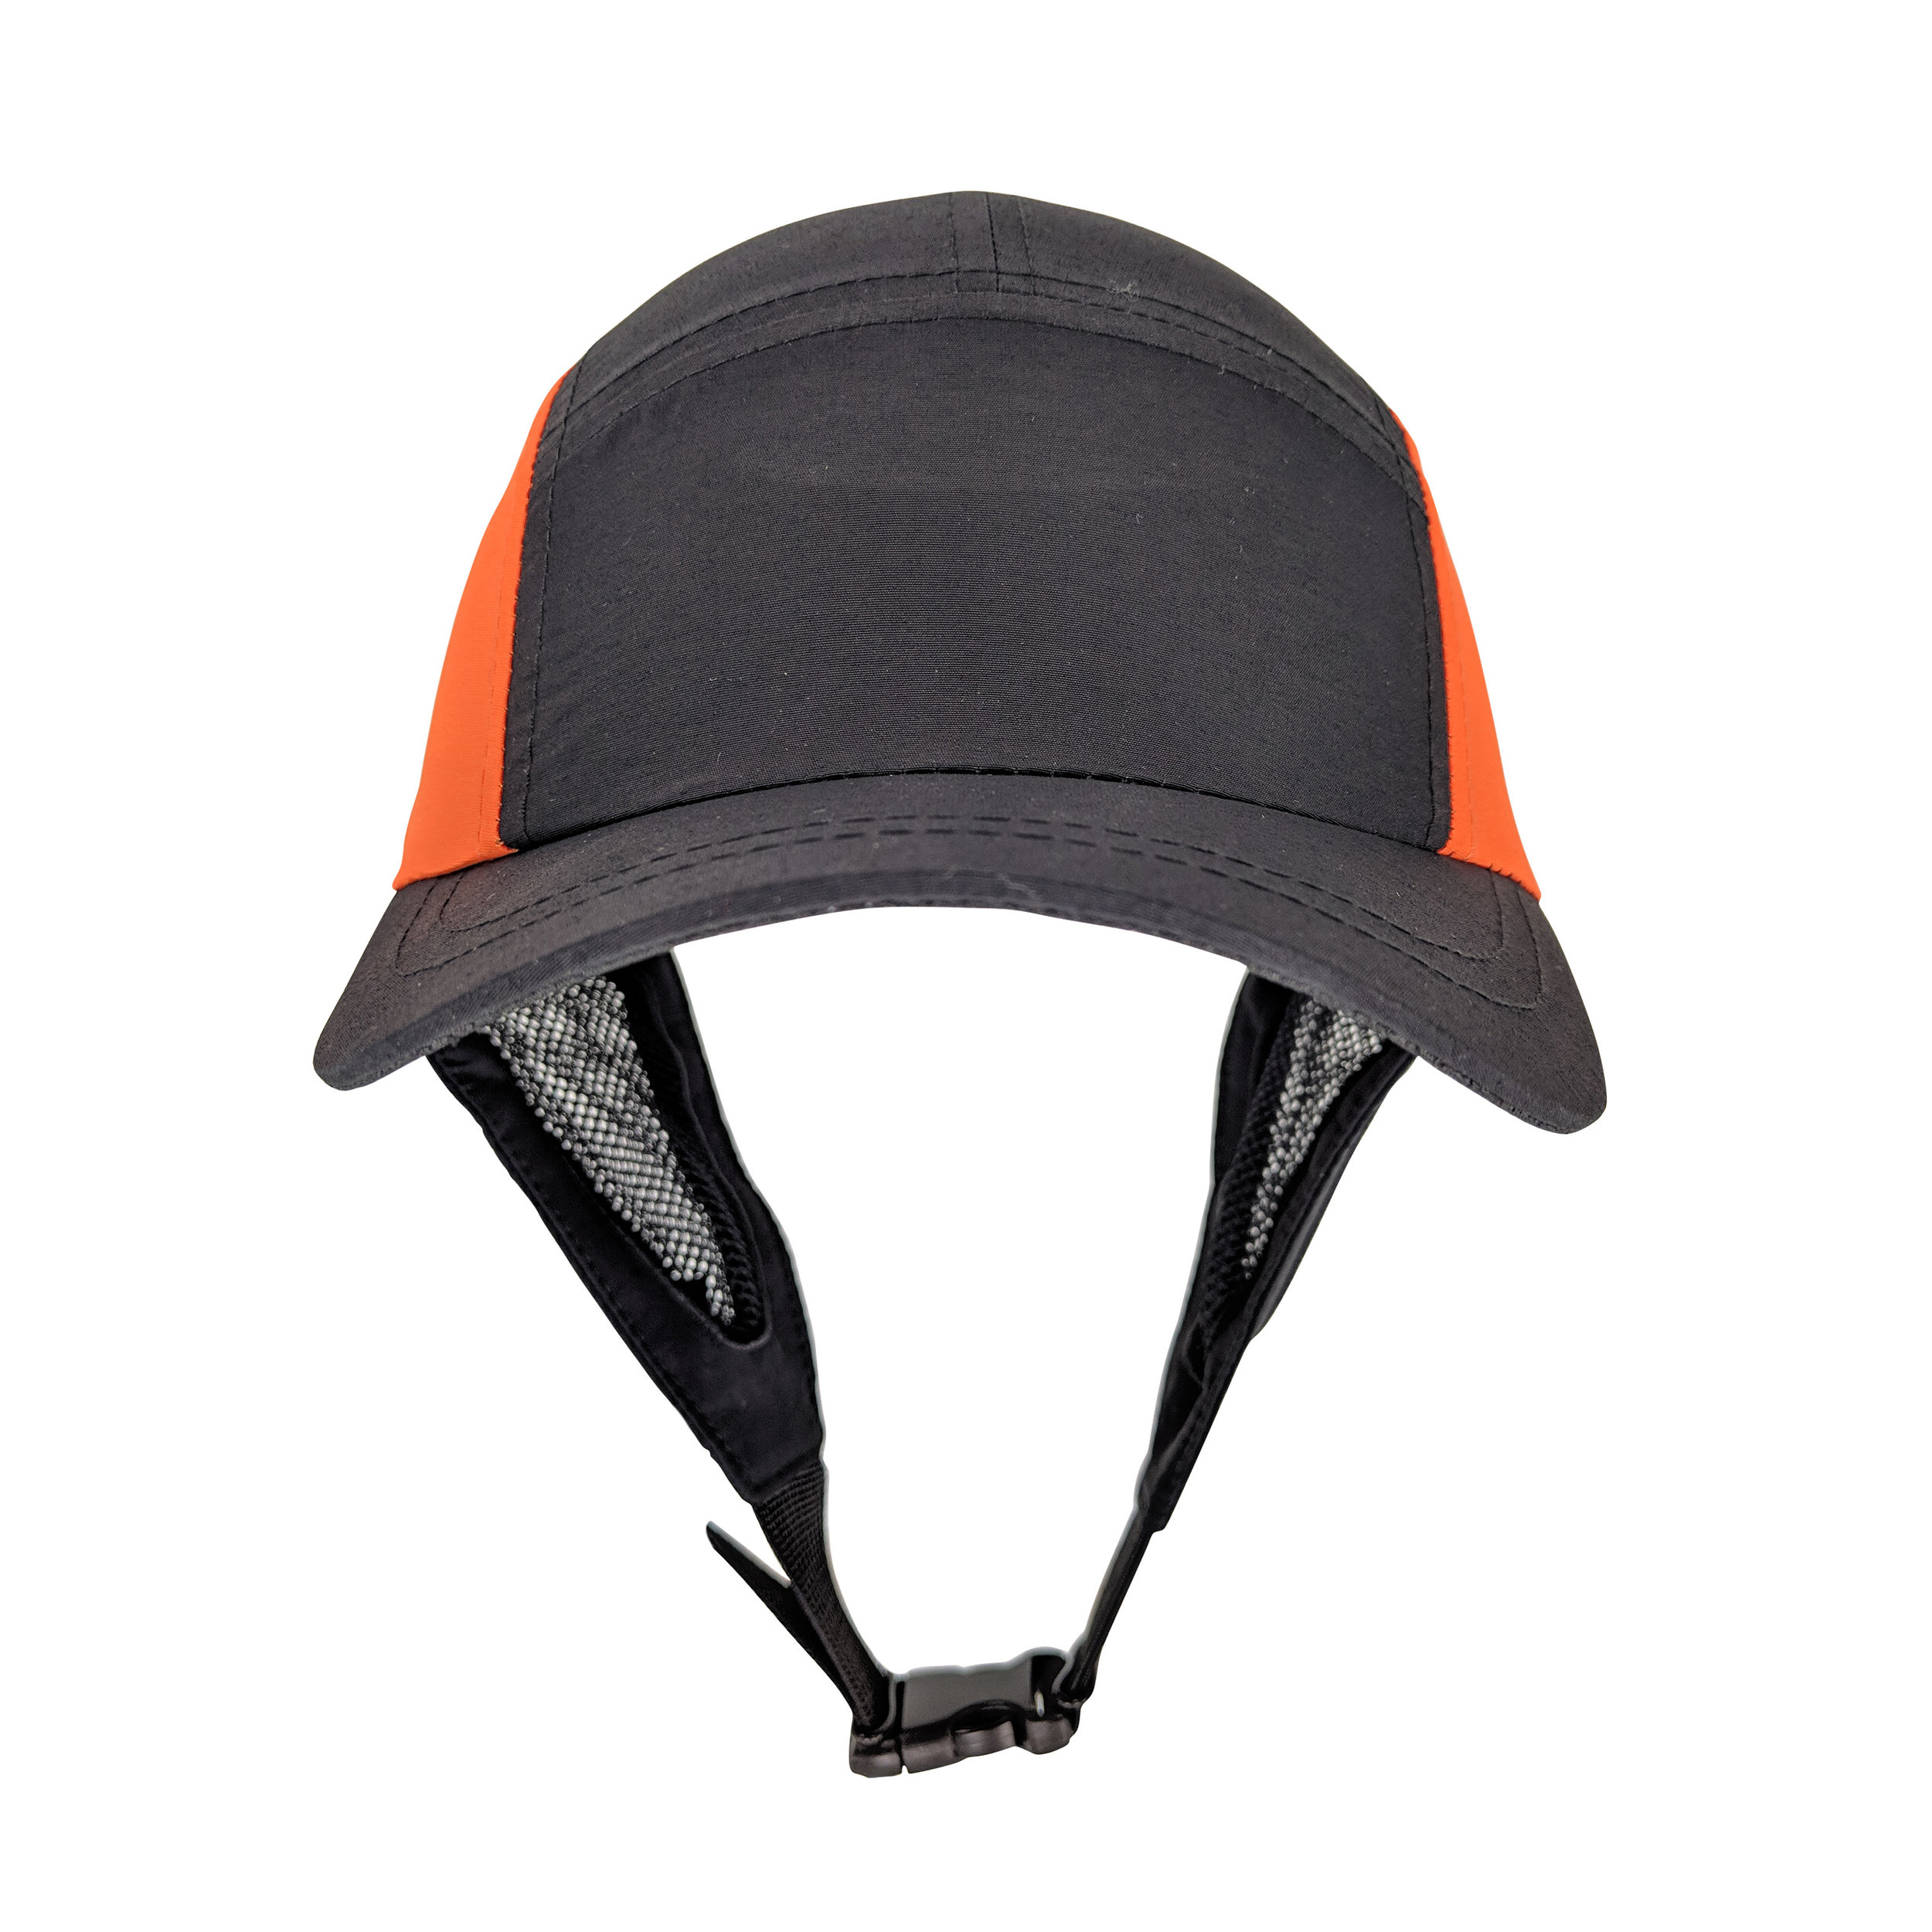 surf-brain-black-orange-front-2.jpg